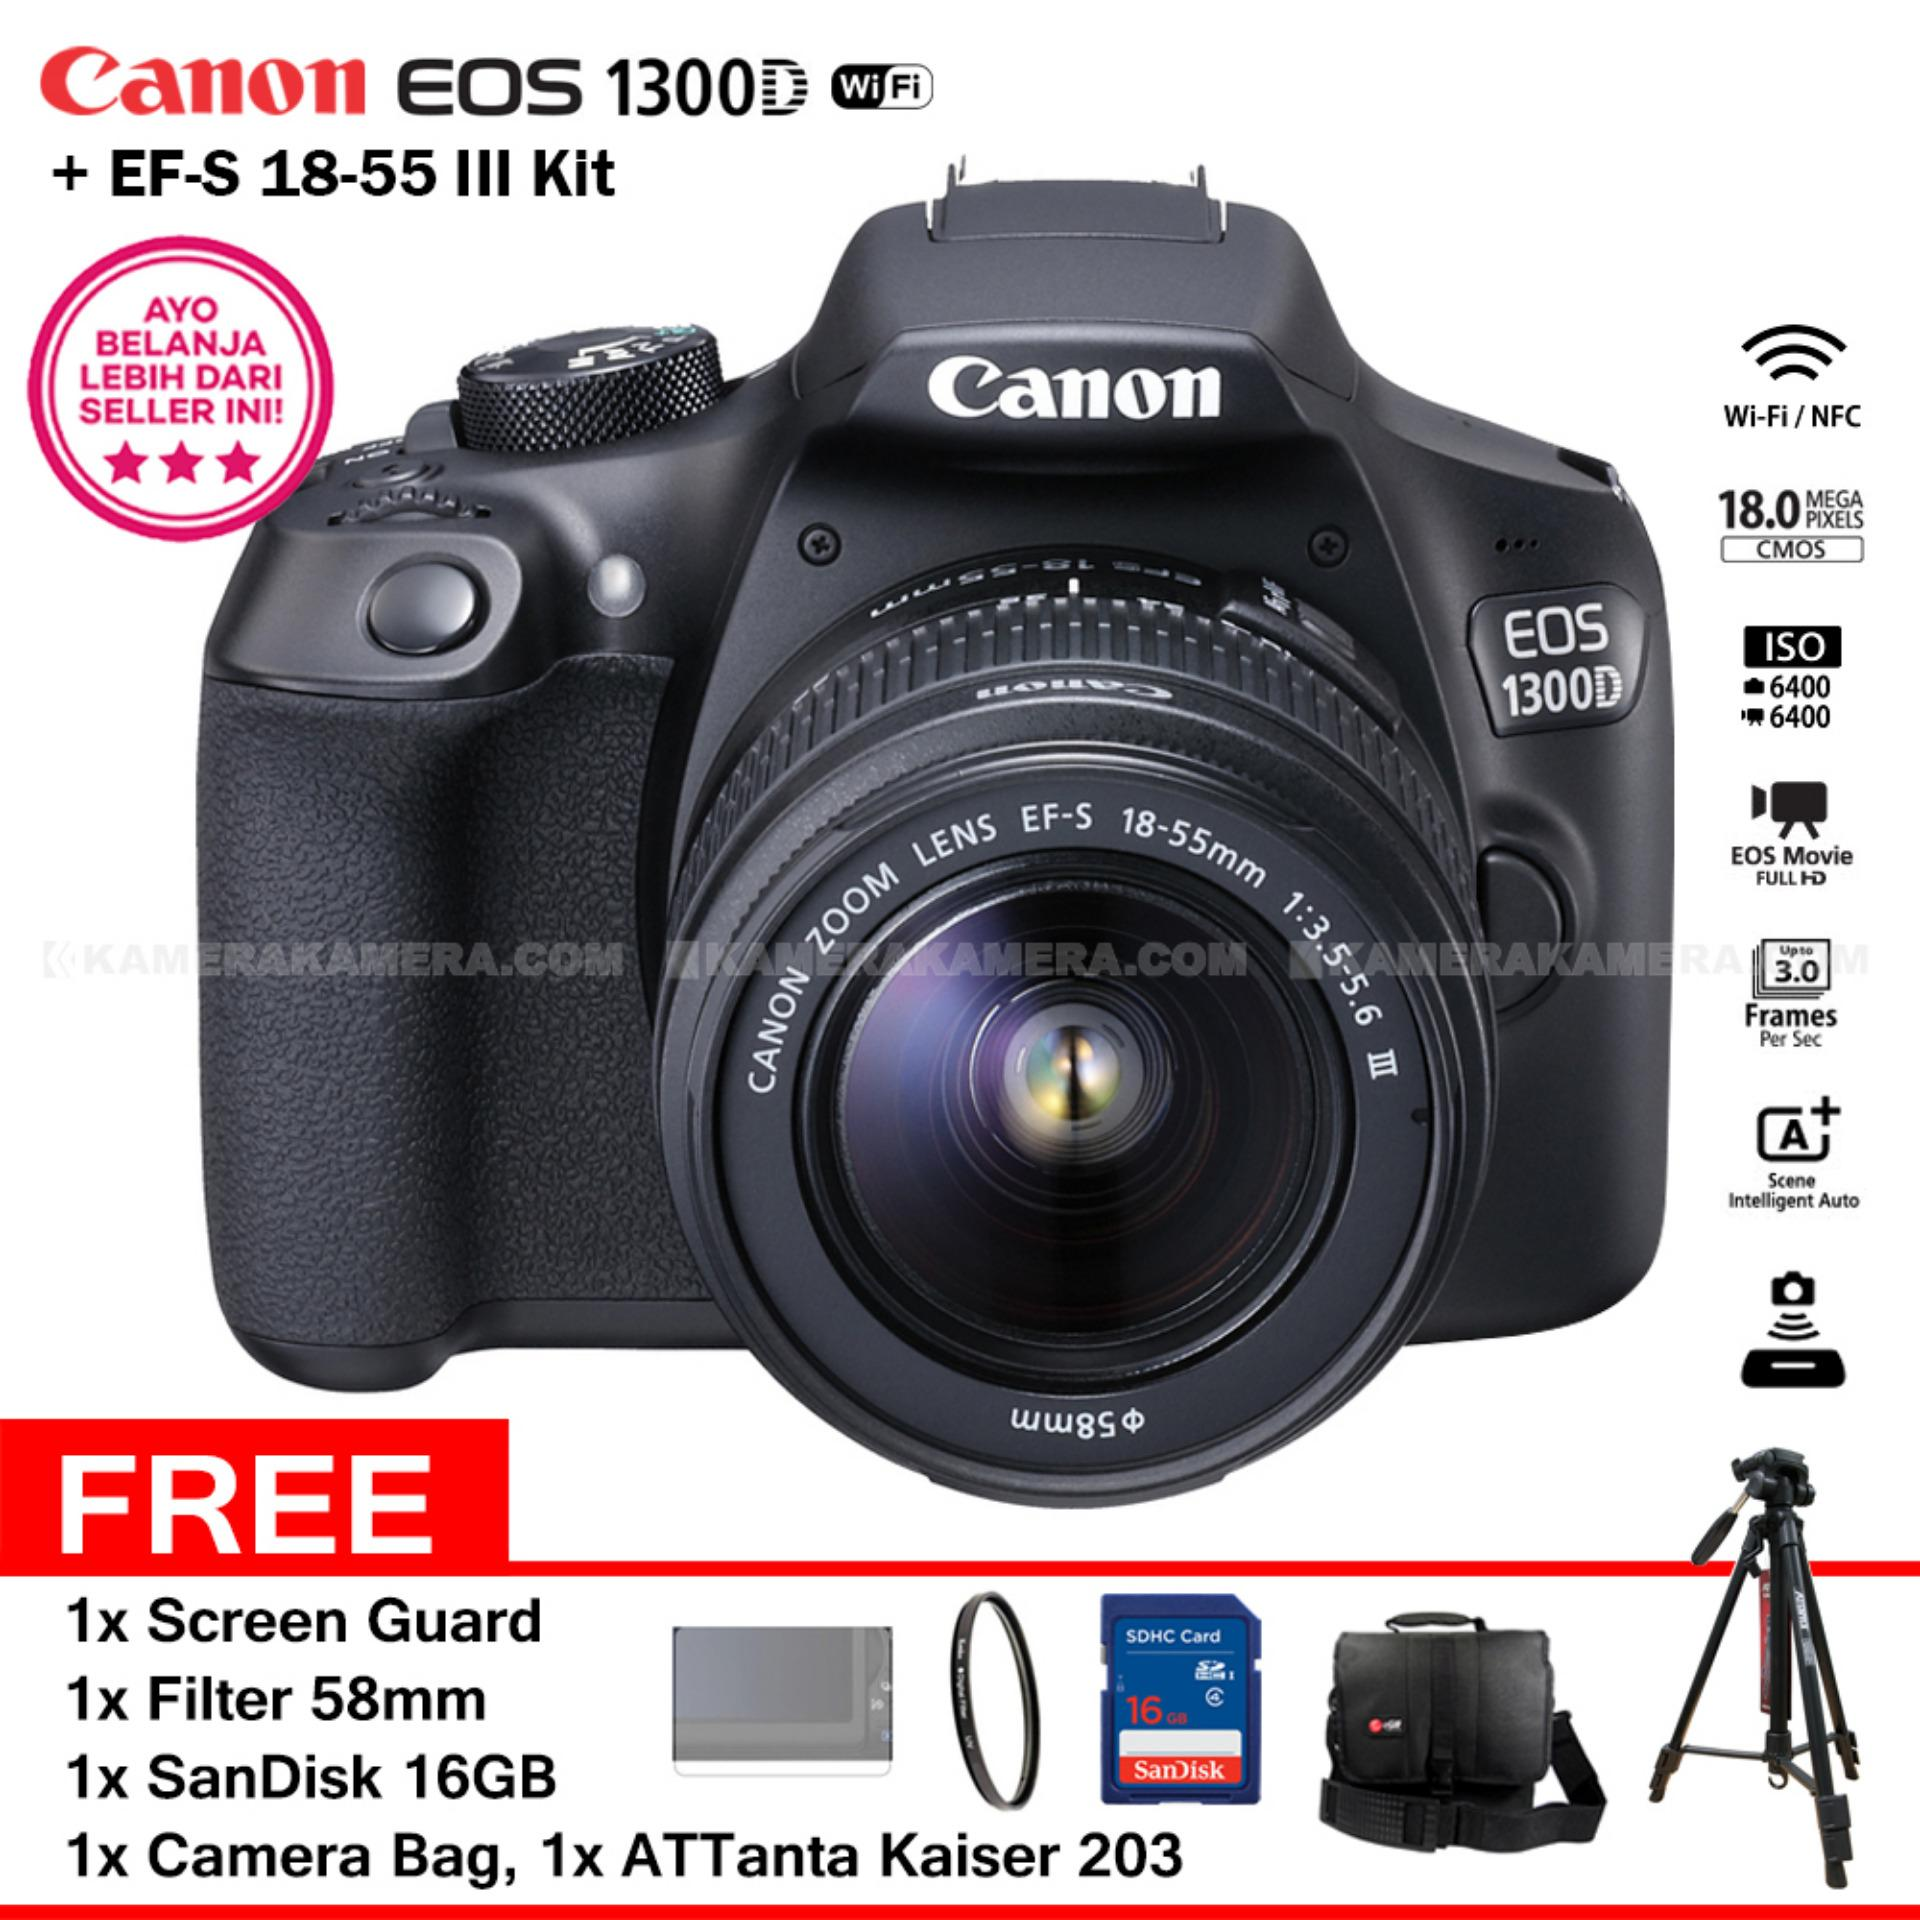 Canon EOS 1300D (Wi-Fi) EF-S 18-55mm III + Screen Guard + Filter 58mm + SanDisk 16Gb + Camera Bag + ATTanta KAISER 203